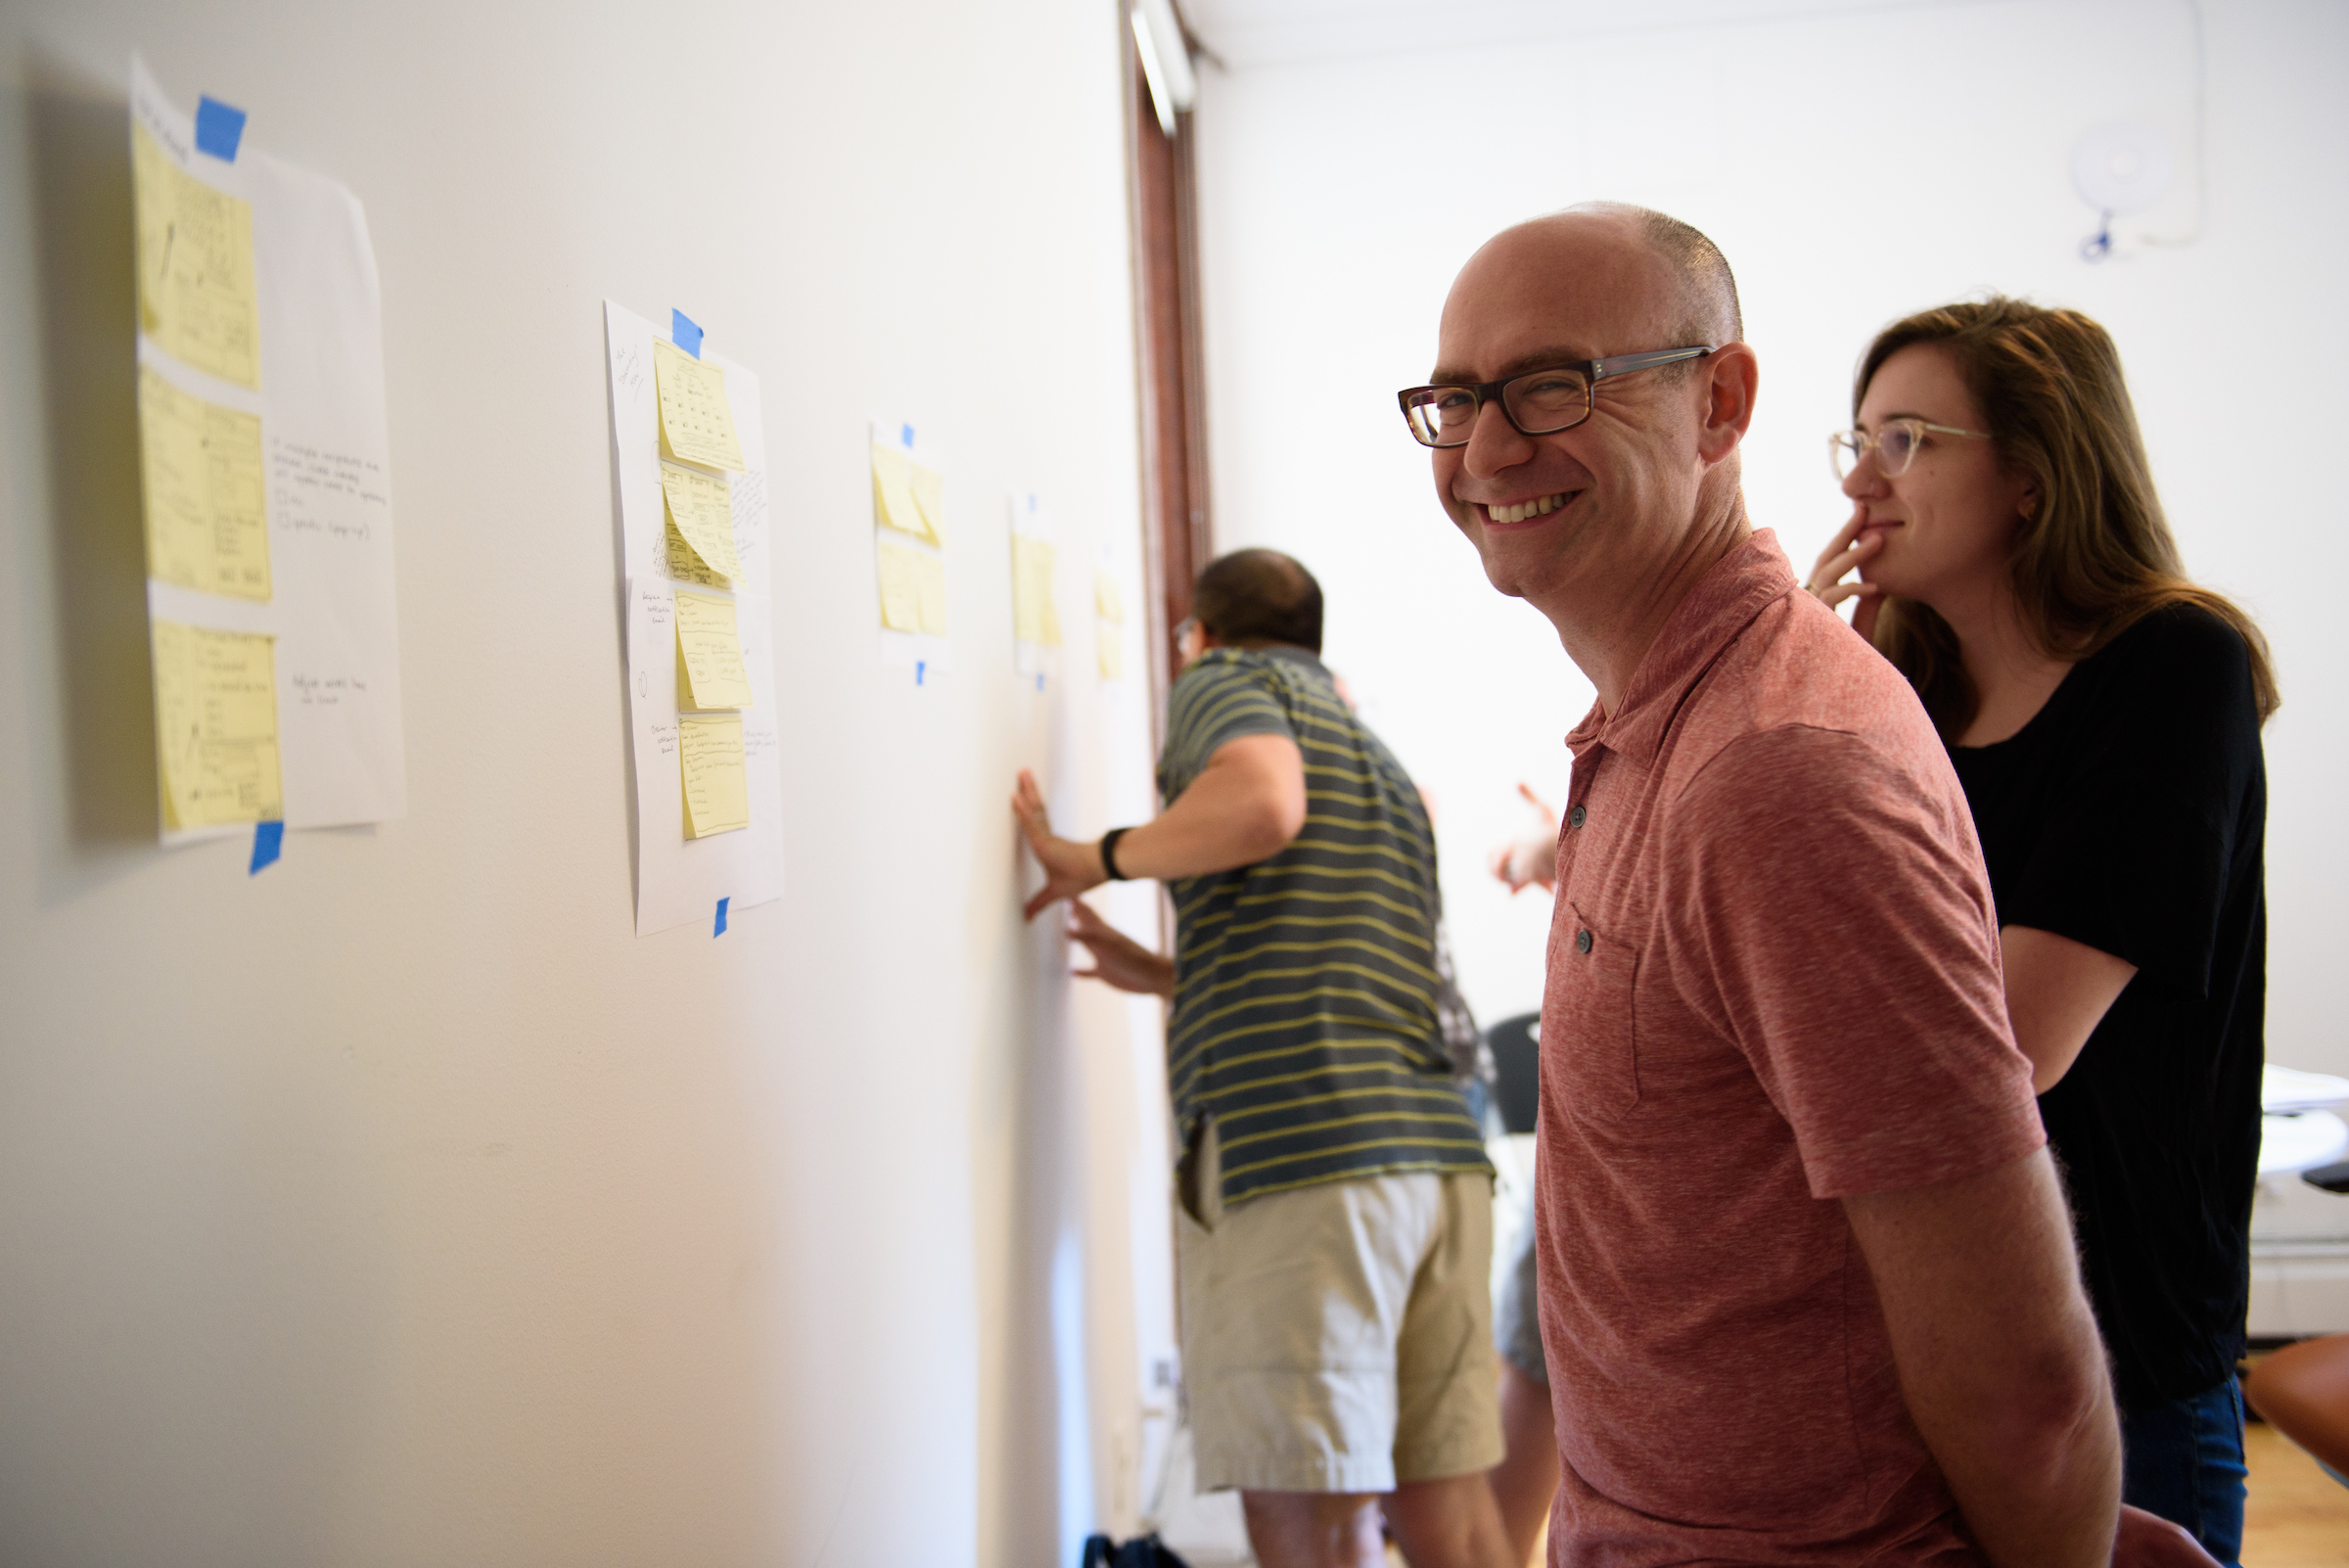 GV sprint participants stand in front of a wall with sticky notes, smiling.